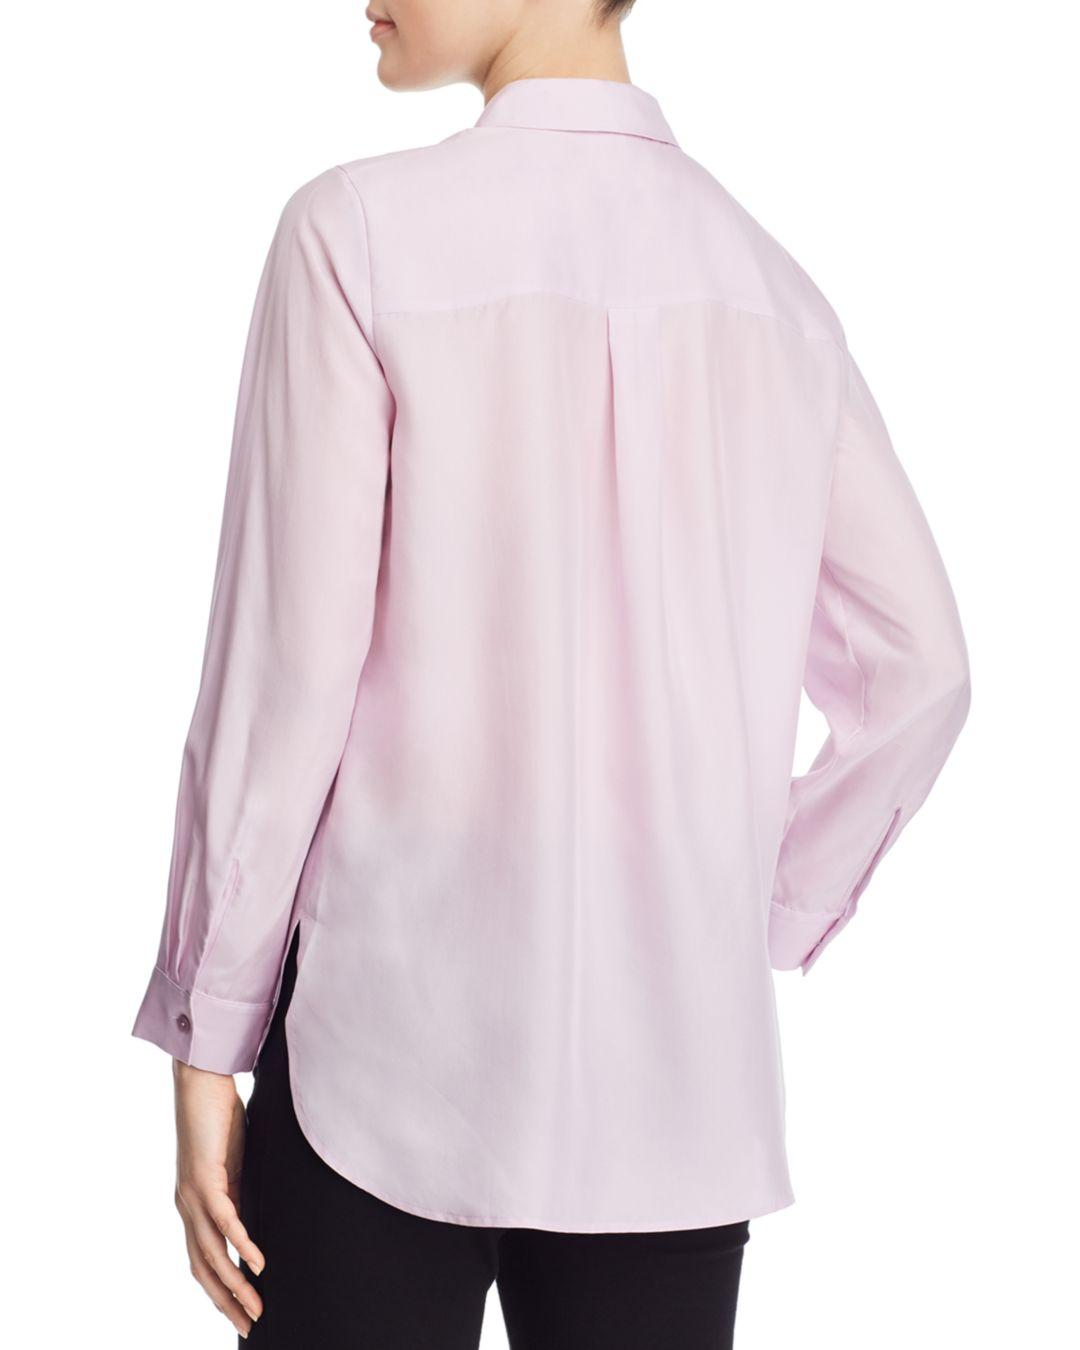 9c6e506f228551 Lyst - Eileen Fisher Silk Classic Button-down Top in Pink